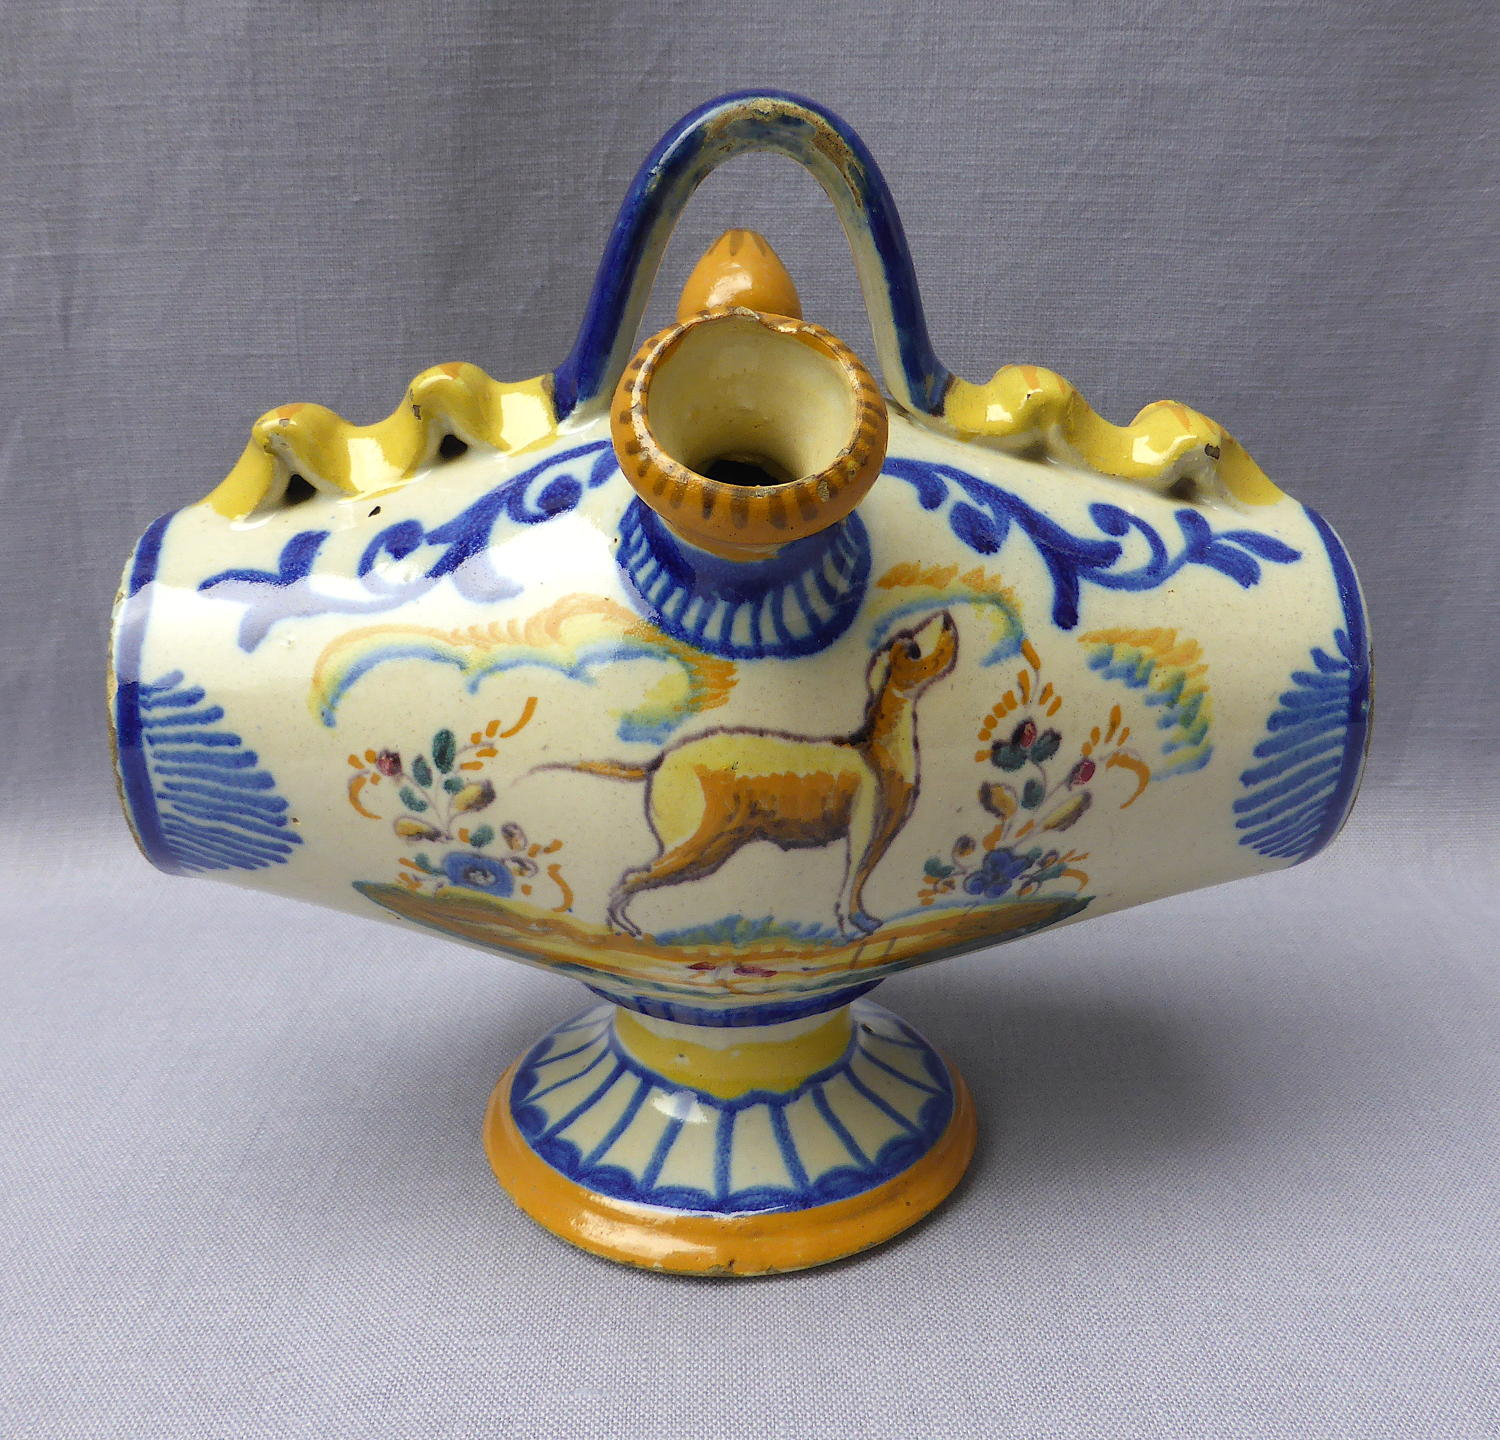 19th century Spanish faience botijo drinking flask